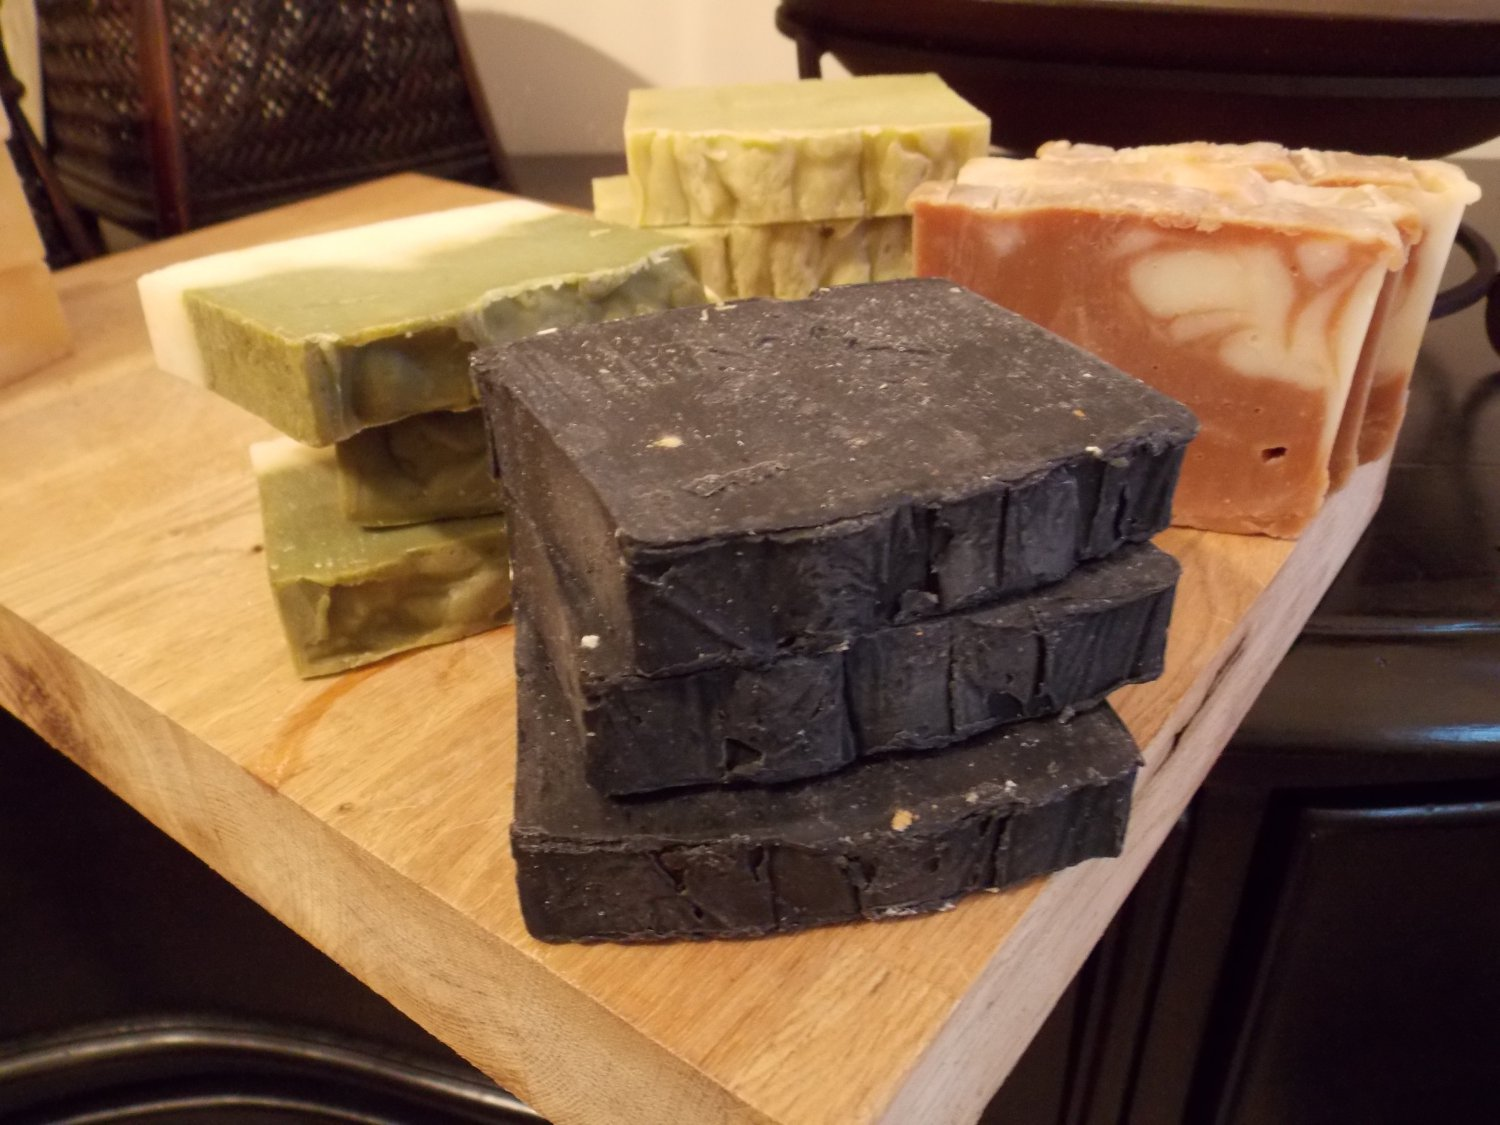 BLACK (K.C. type) - Cold Process Soap with Activated Charcoal